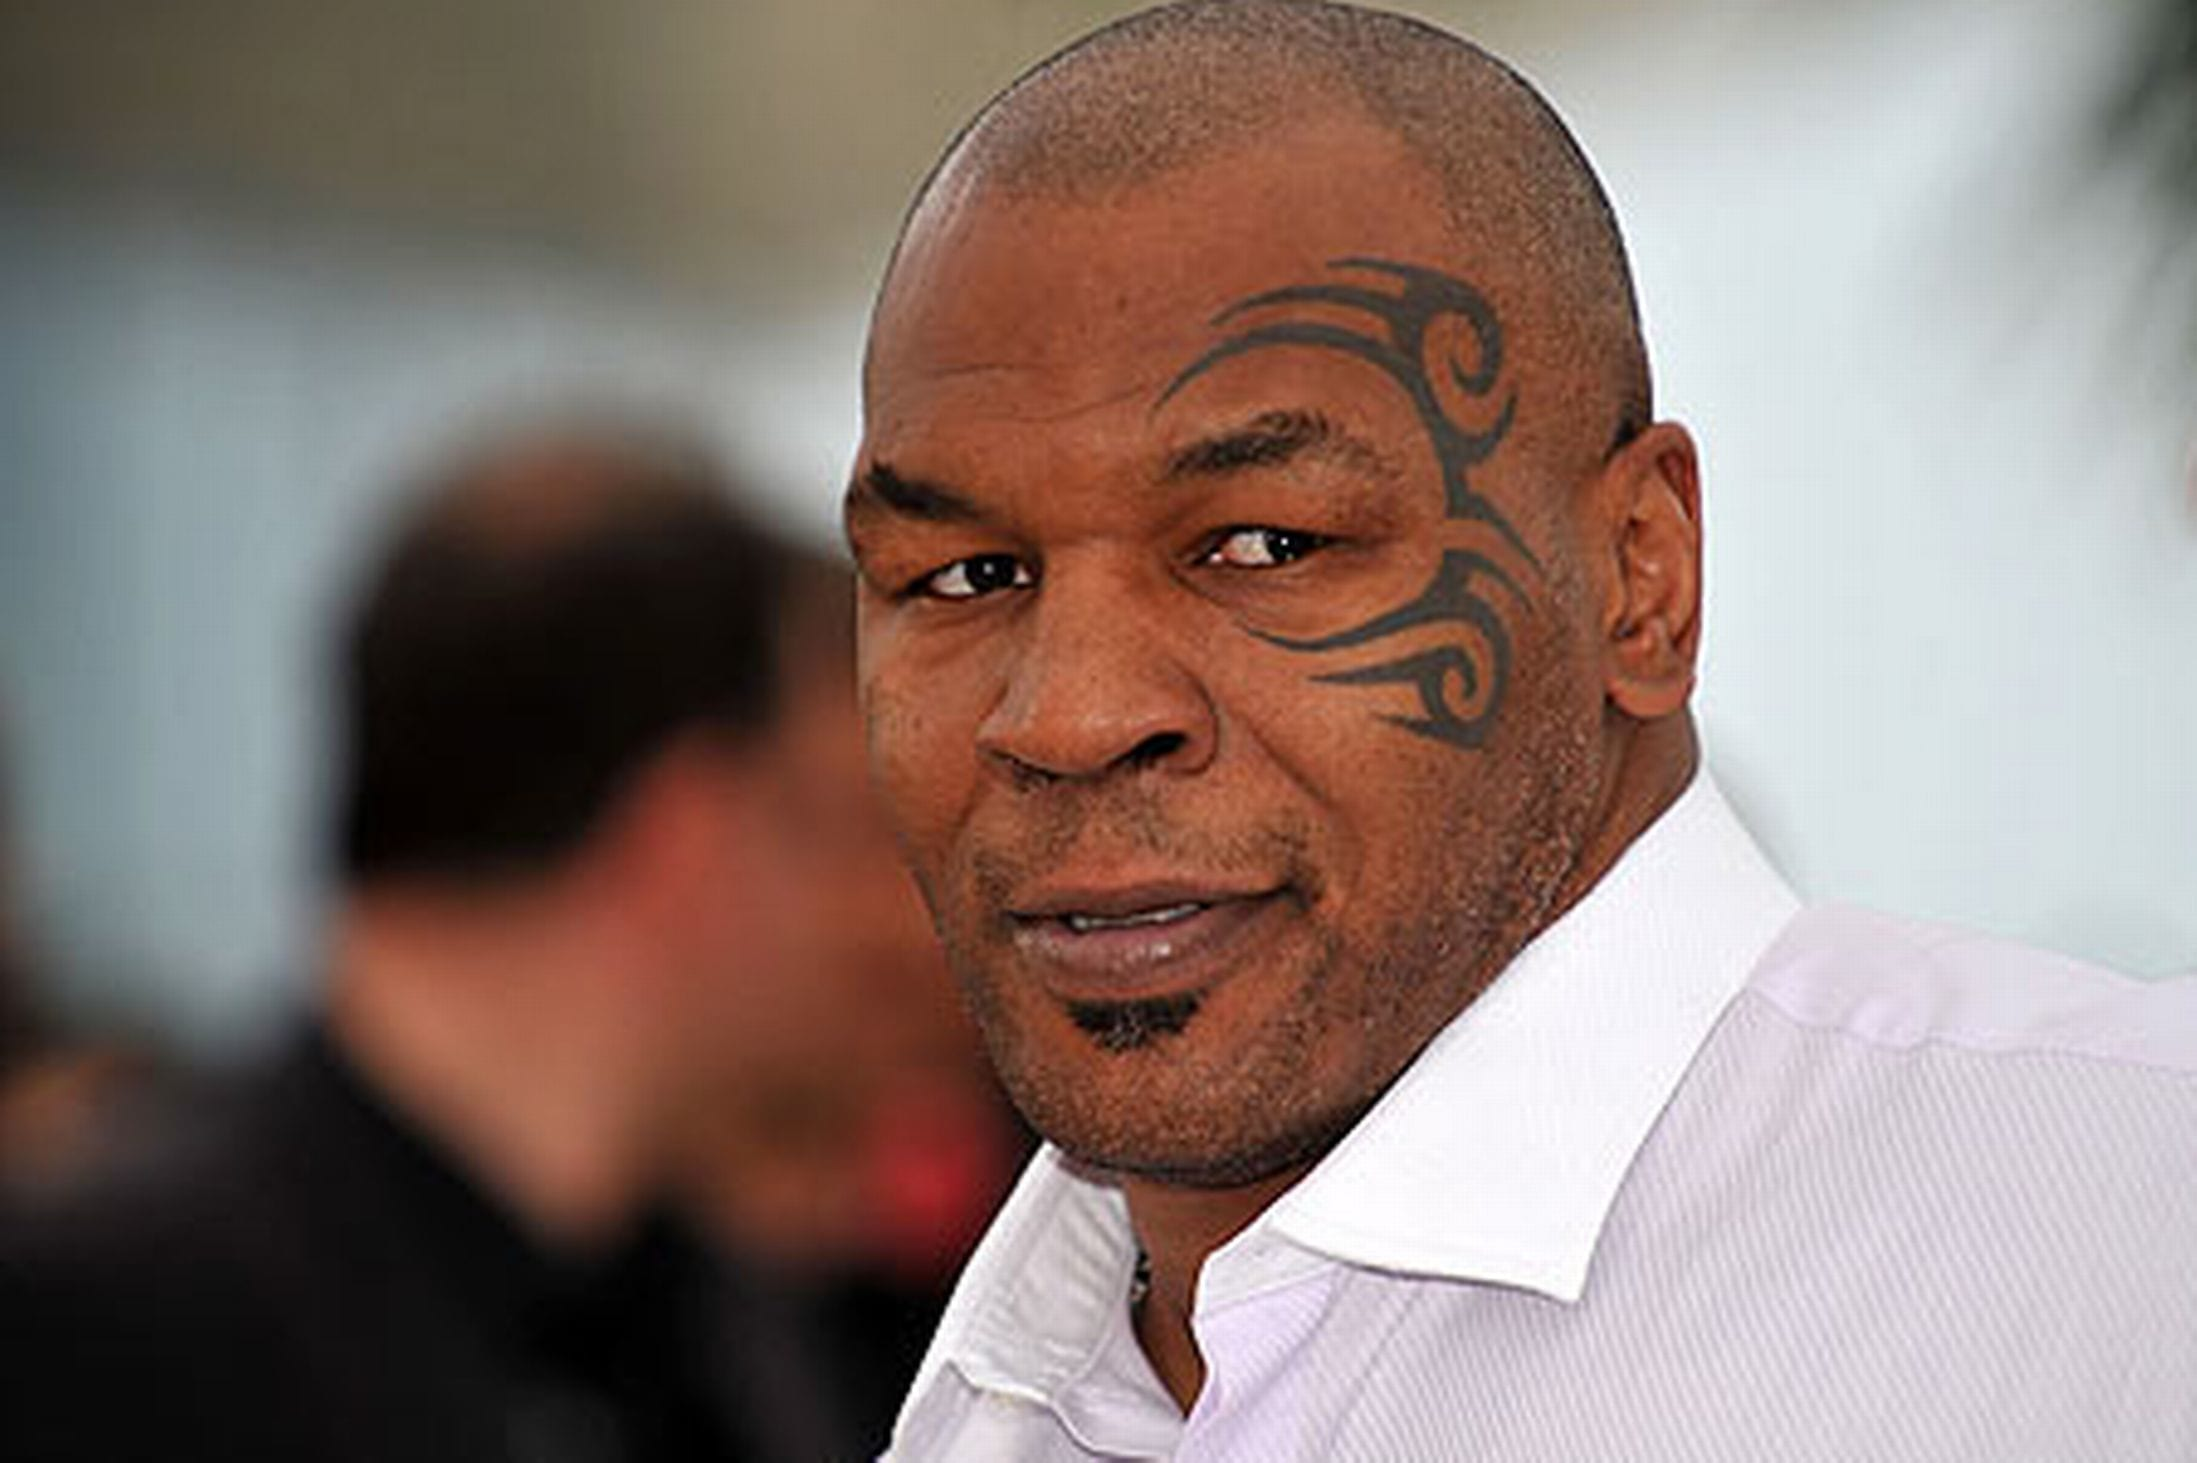 mike-tyson-pic-getty-image-1-266516999